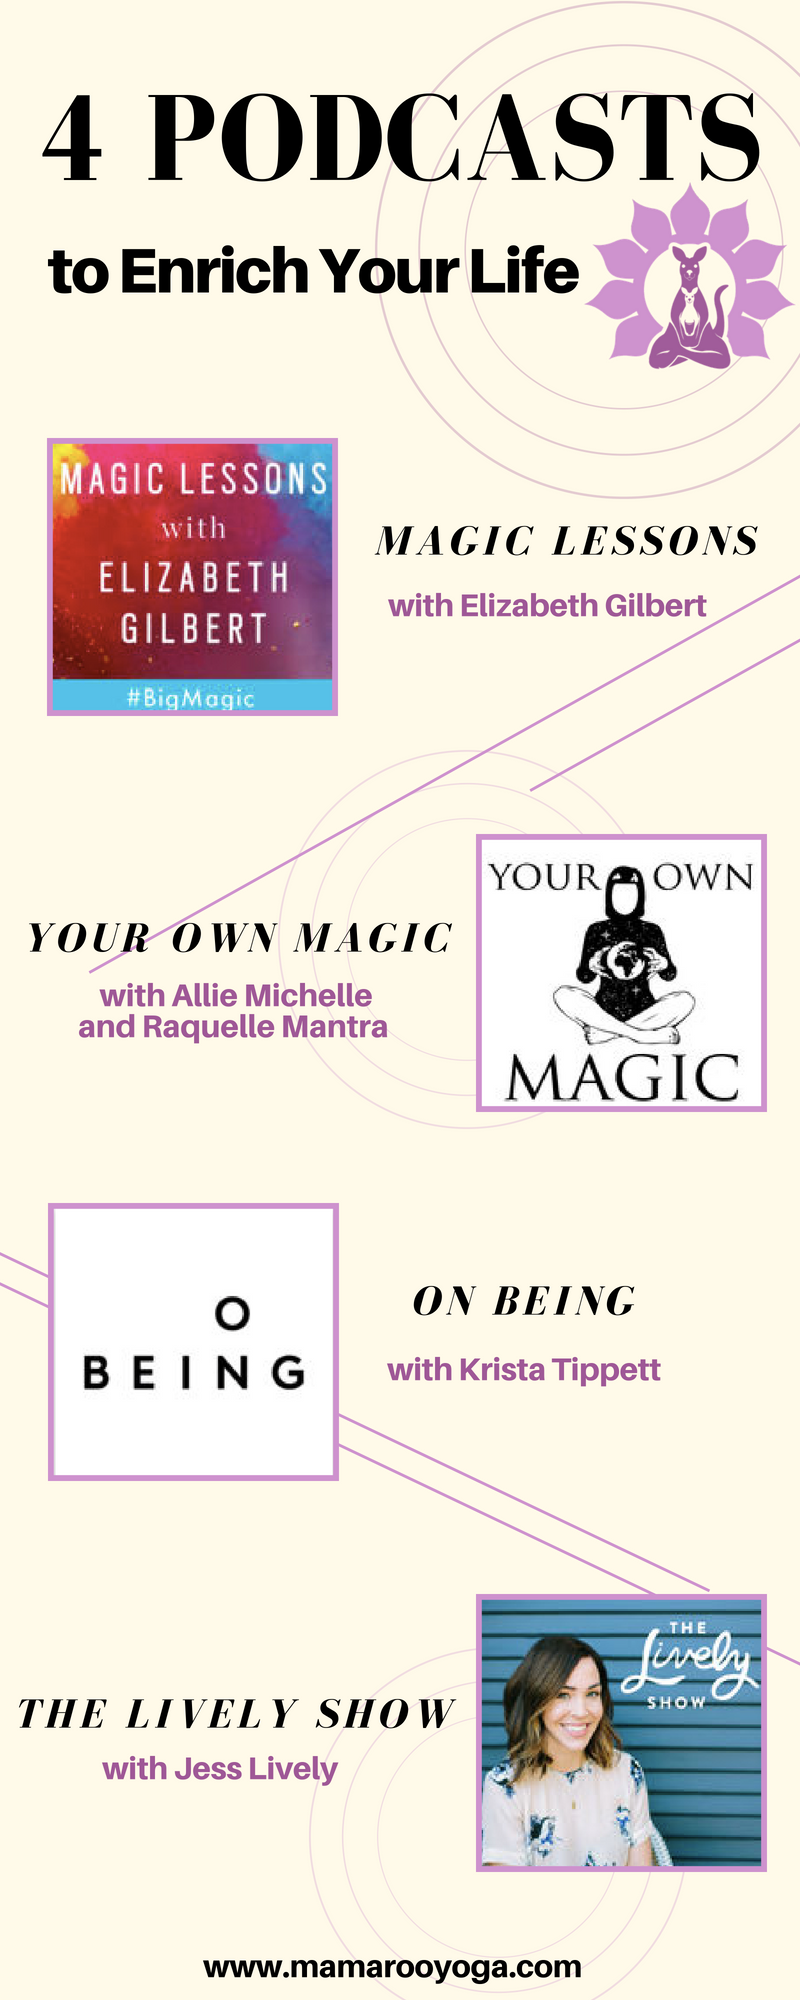 4 podcasts to enrich your life graphic